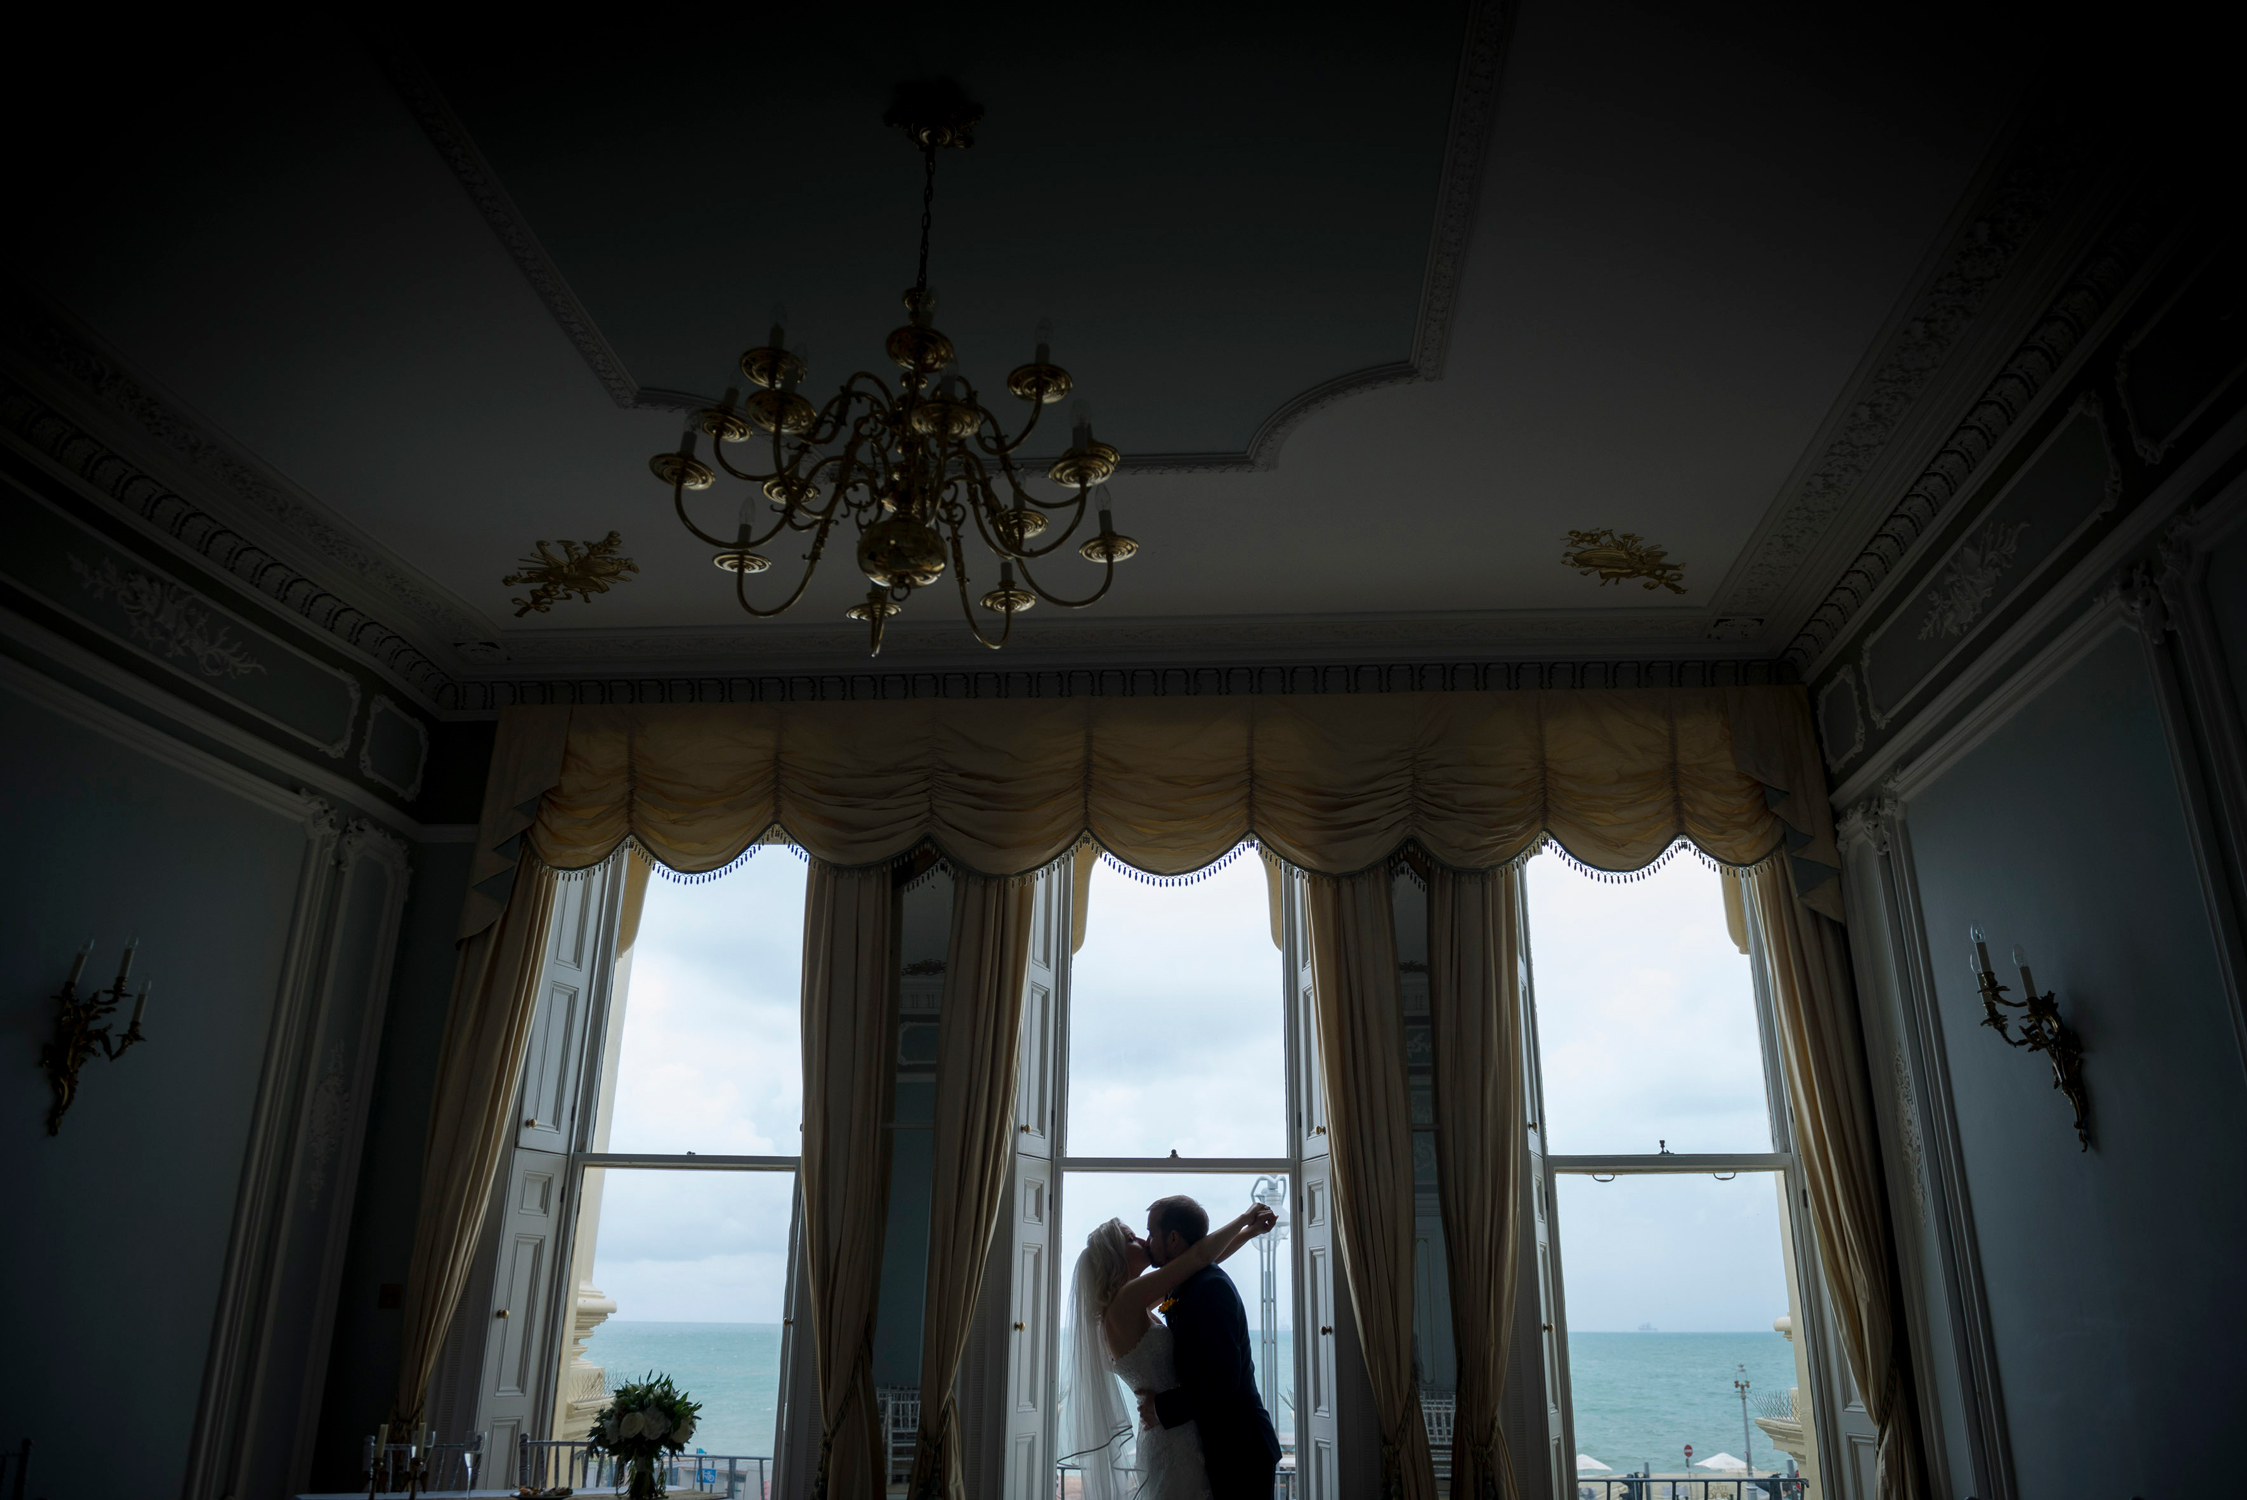 ginger_fox_brighton_wedding4.jpg